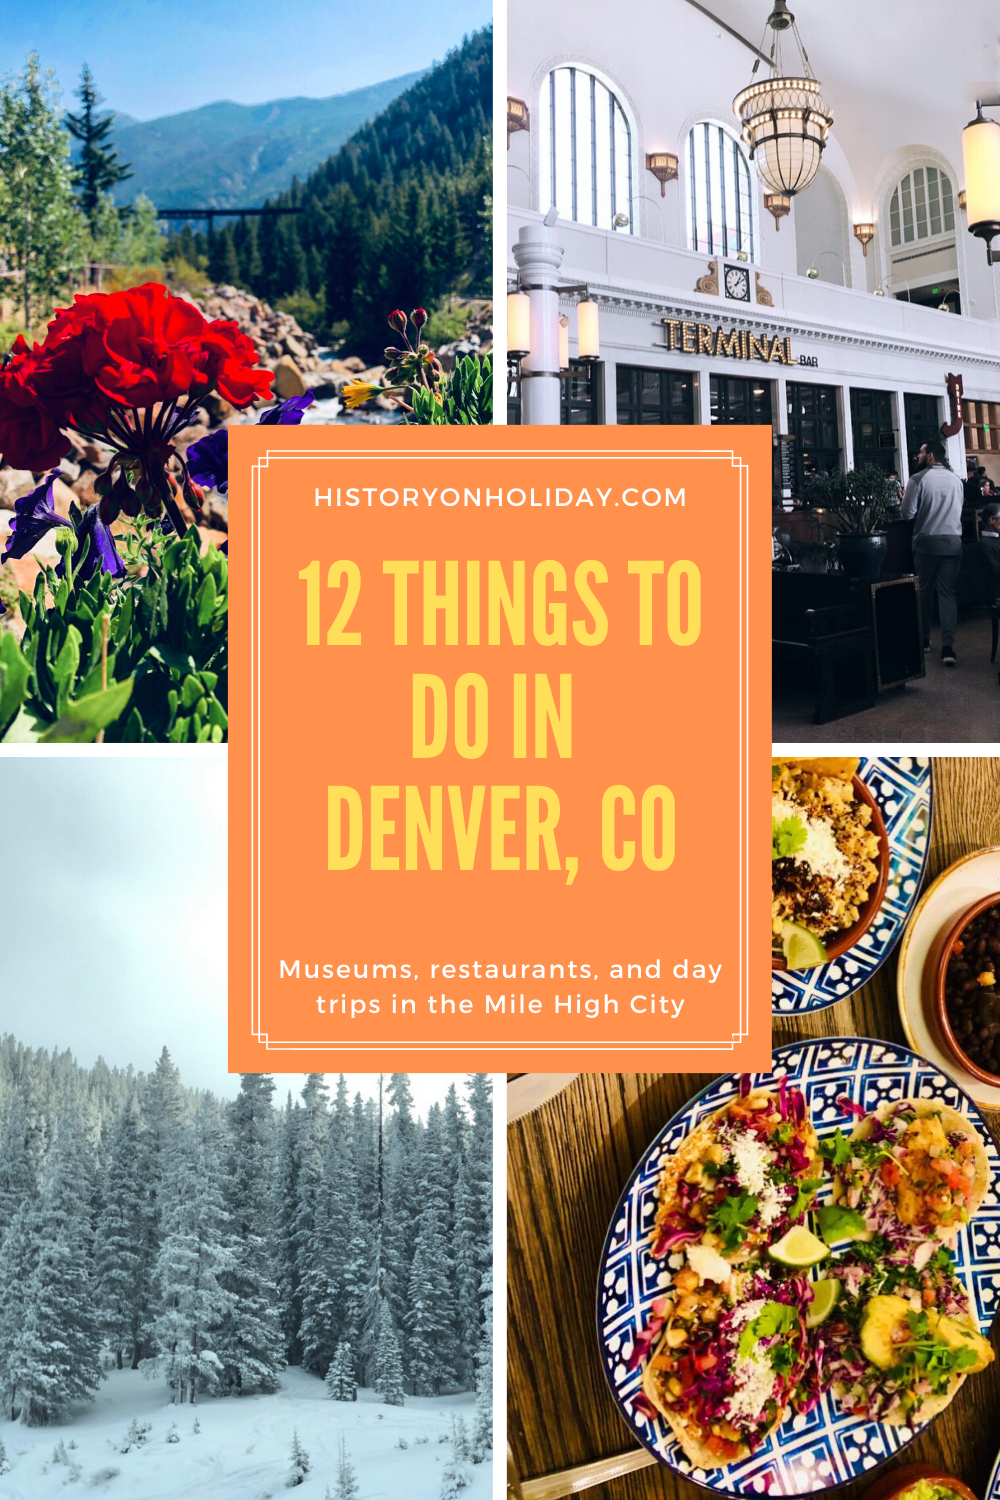 12 Things To Do In Denver Colorado In 2020 Day Trips From Denver Day Trips Things To Do